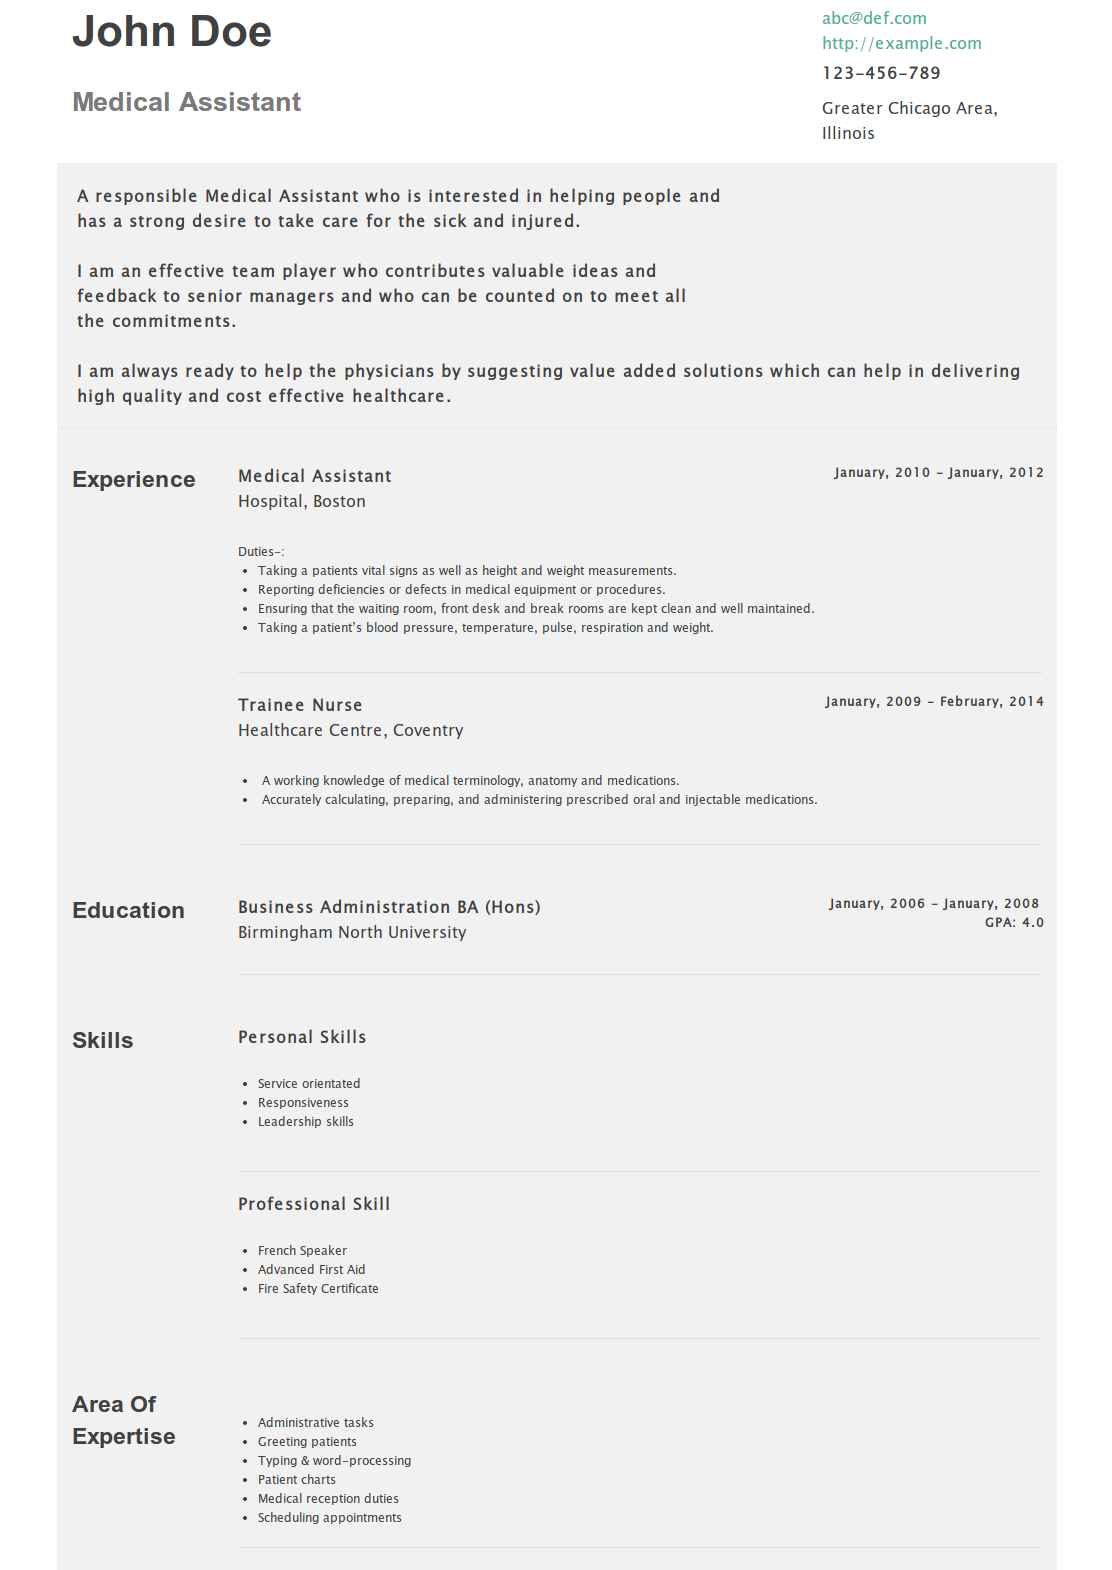 Medical Assistant Resume HttpsHipcvComAbcRMedicalAssistant